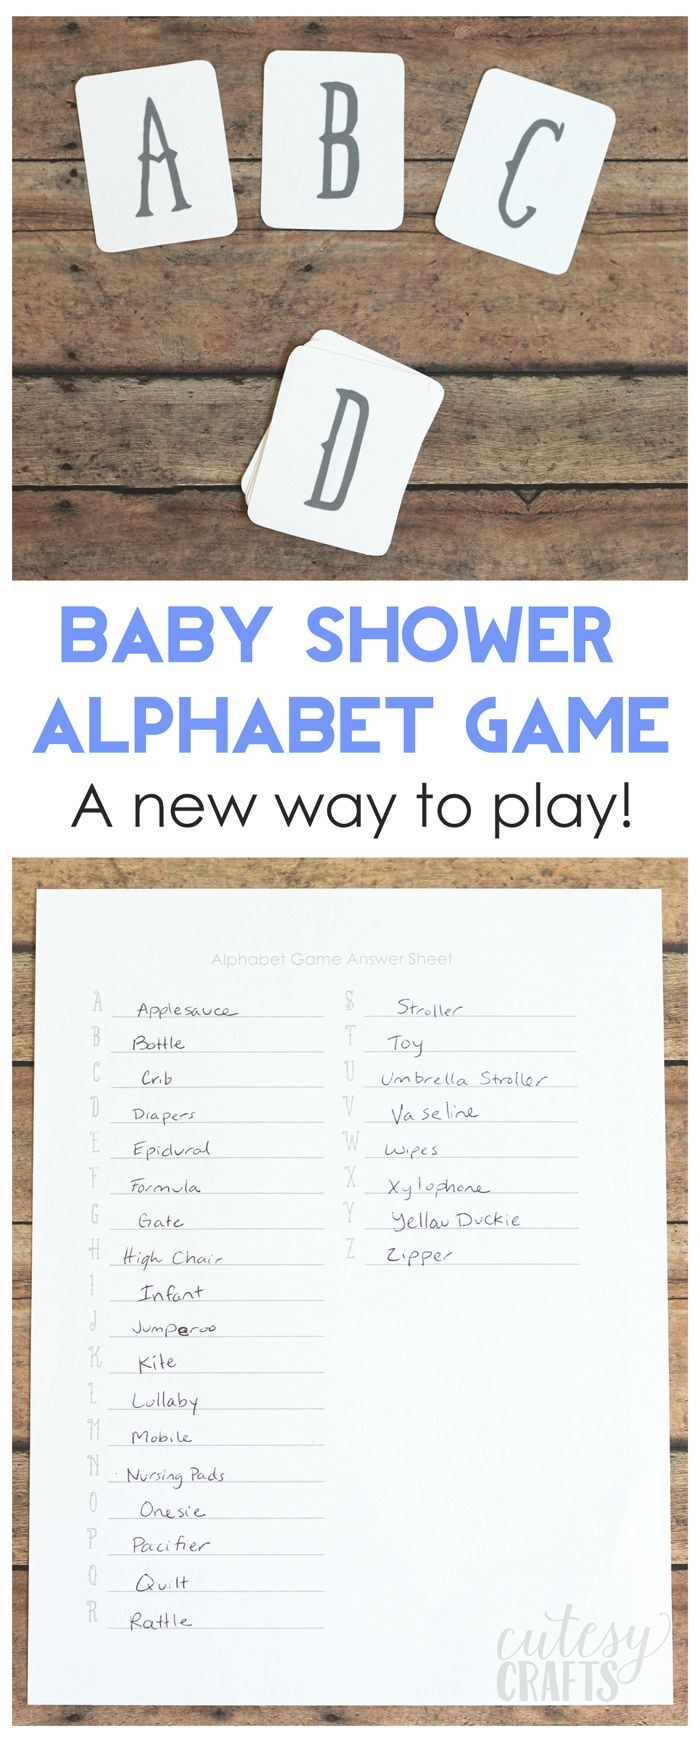 baby shower letters free printable baby shower alphabet cards 20541 | 62ec3ad27ee90ff44657ba3f642009cc alphabet games the alphabet